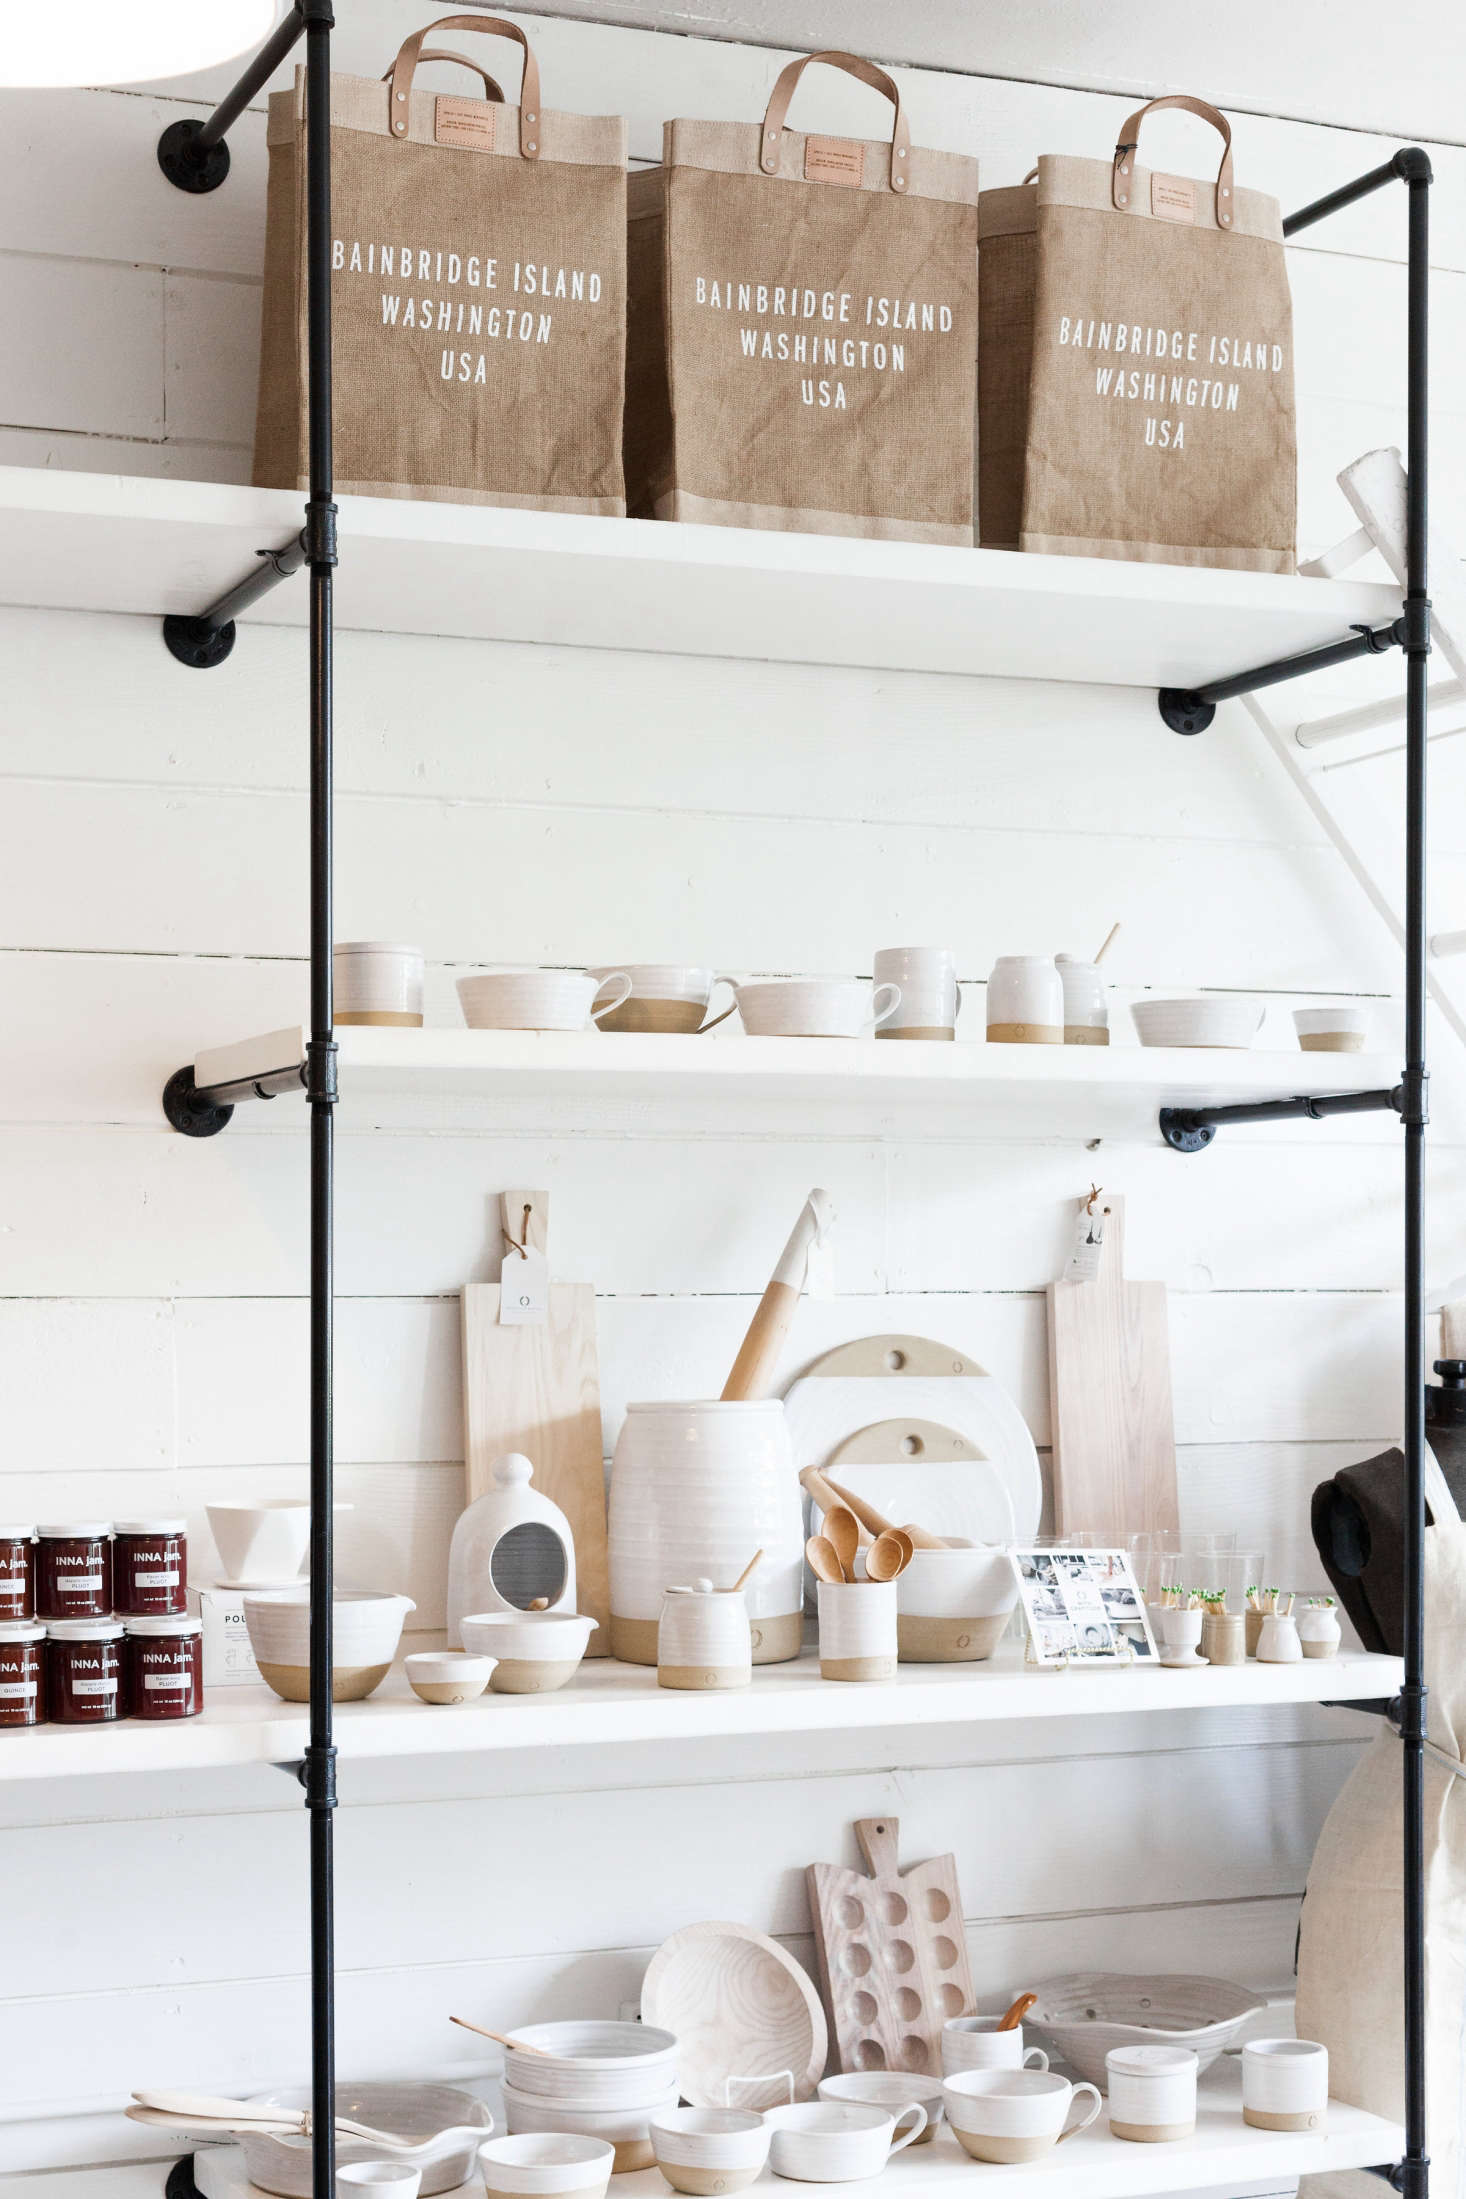 The store offers a wide array of wares from Farmhouse Pottery based in Woodstock, Vermont.